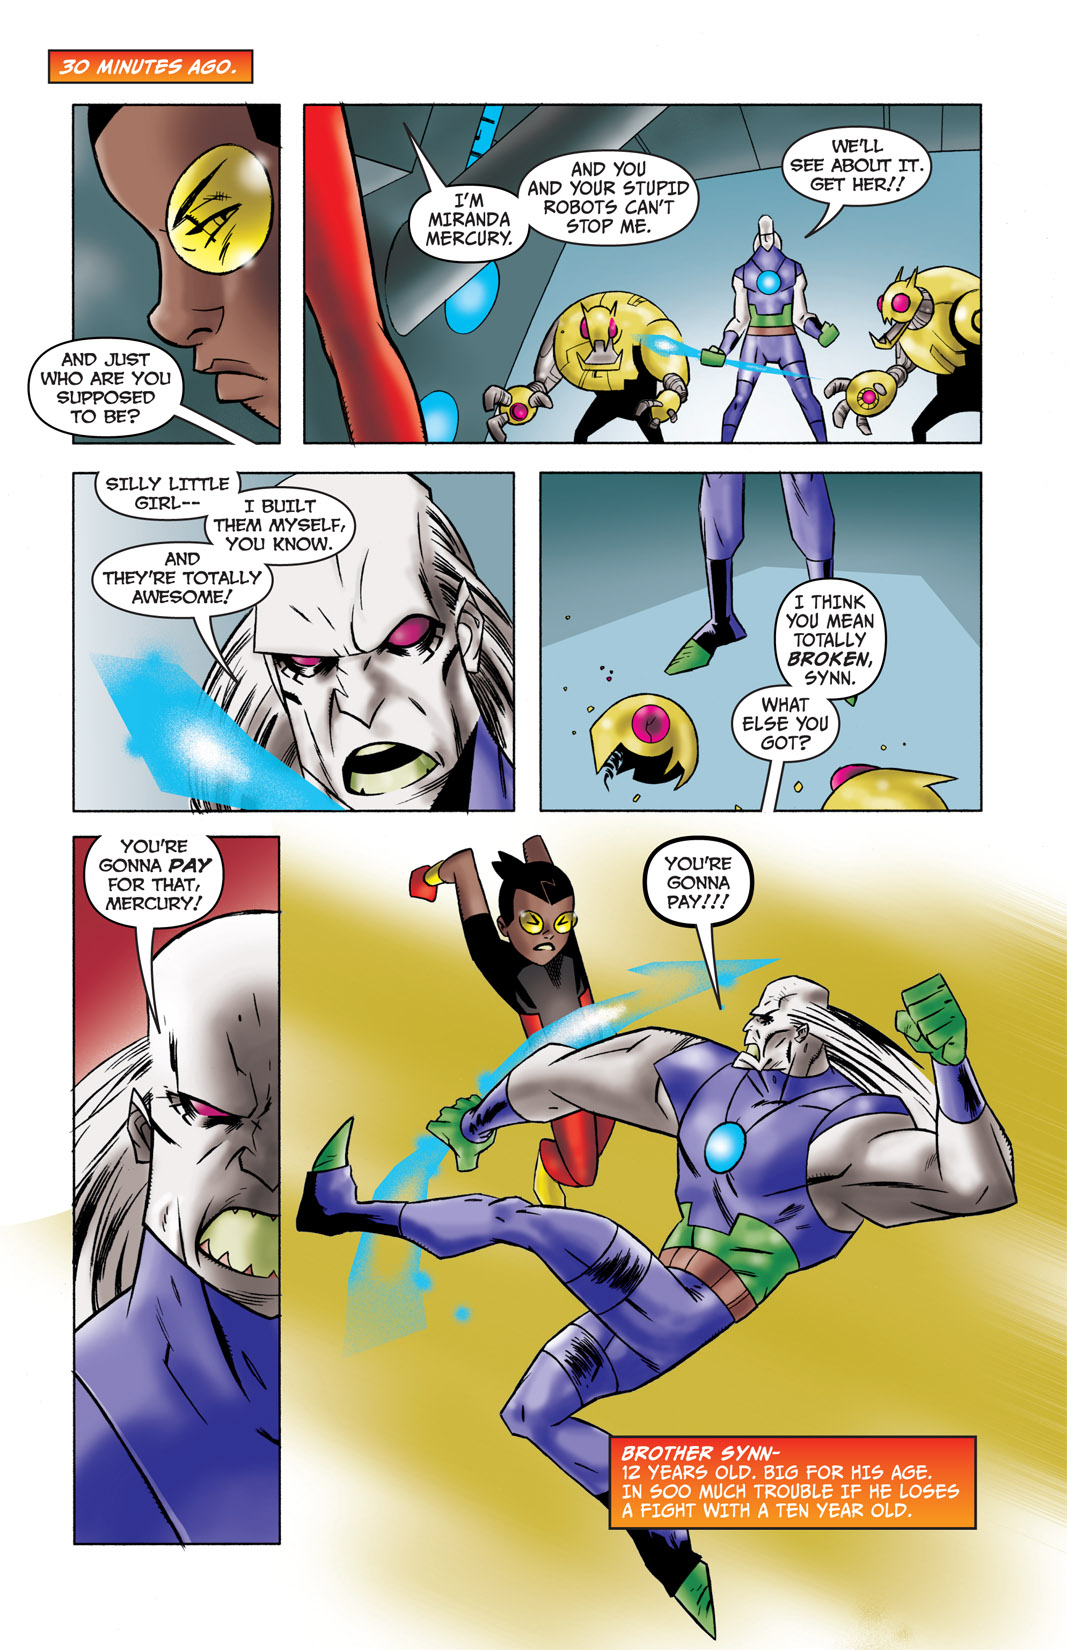 Read online The Many Adventures of Miranda Mercury: Time Runs Out comic -  Issue # TPB - 6